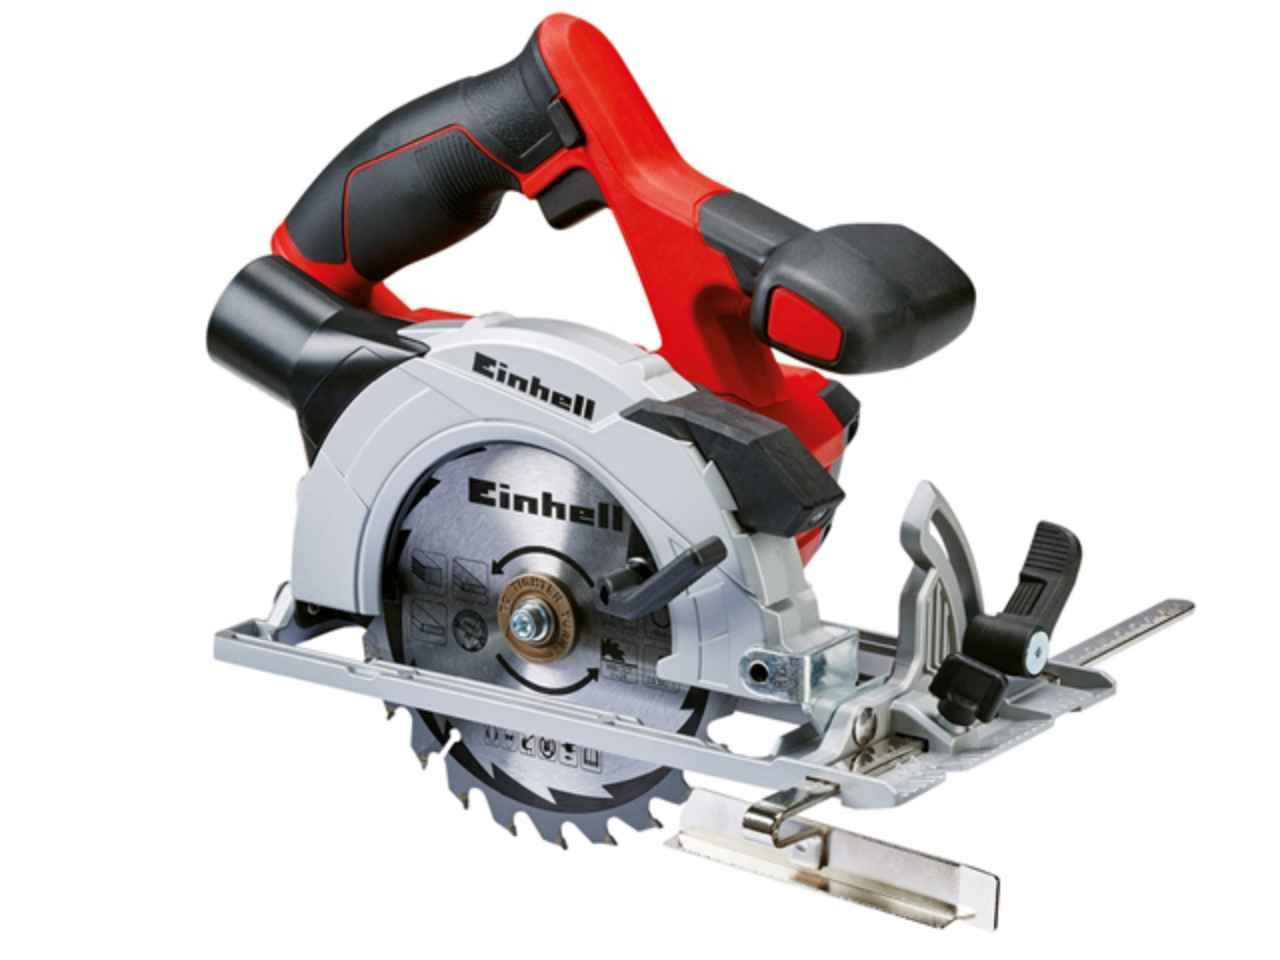 einhell 4331200 18v power x change circular saw bare unit 4331200 ebay. Black Bedroom Furniture Sets. Home Design Ideas